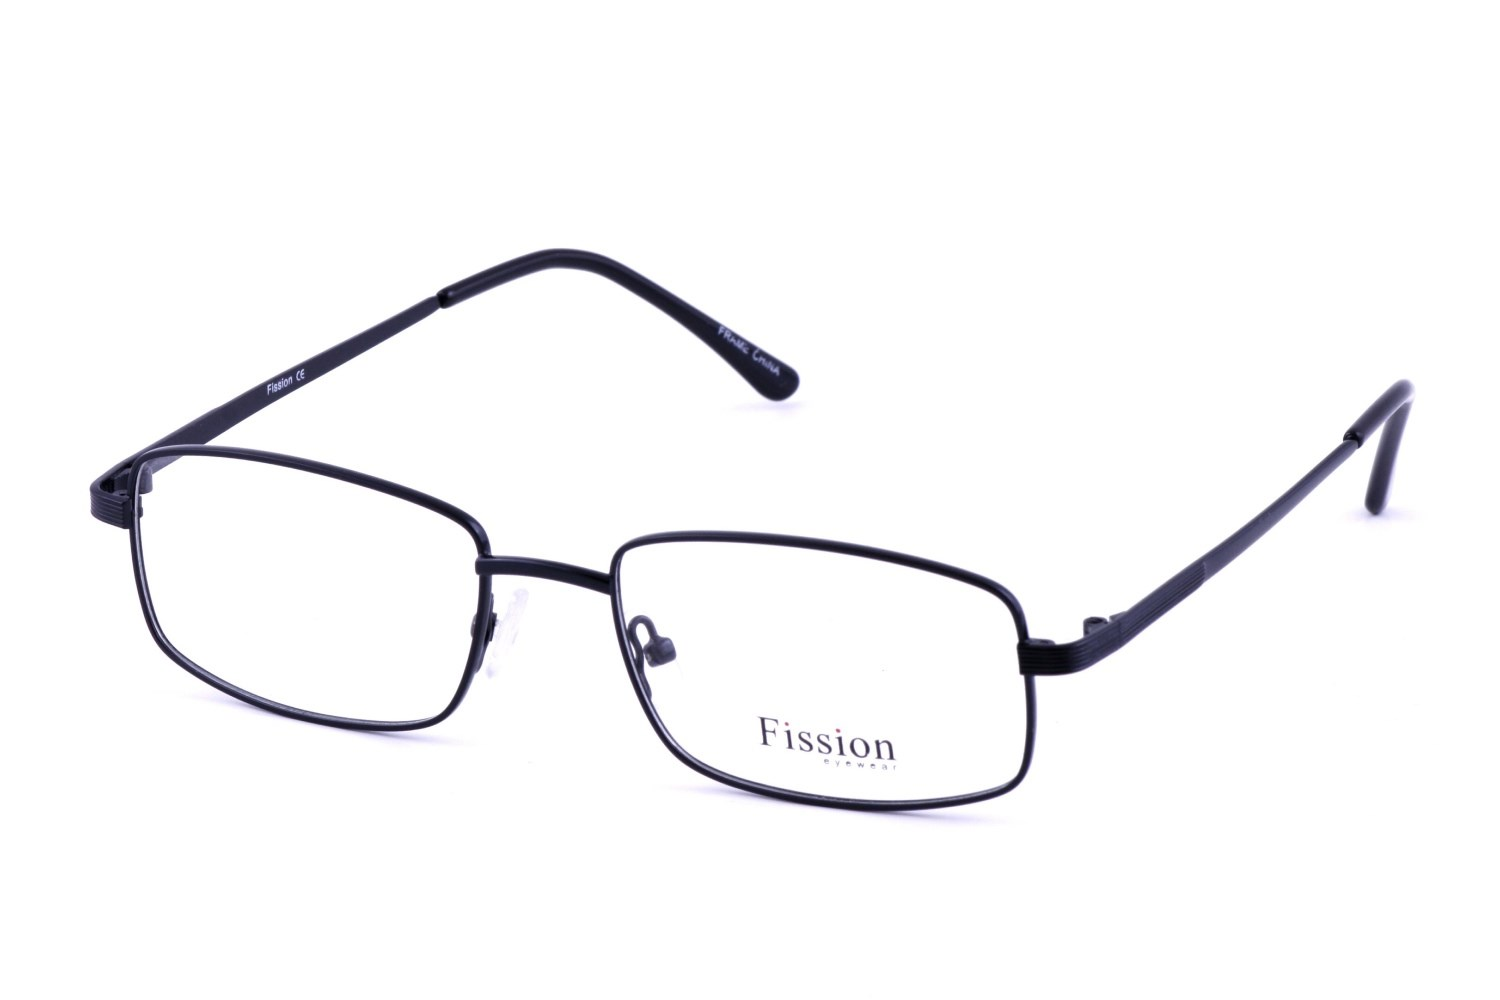 Fission 030 Prescription Eyeglasses Frames